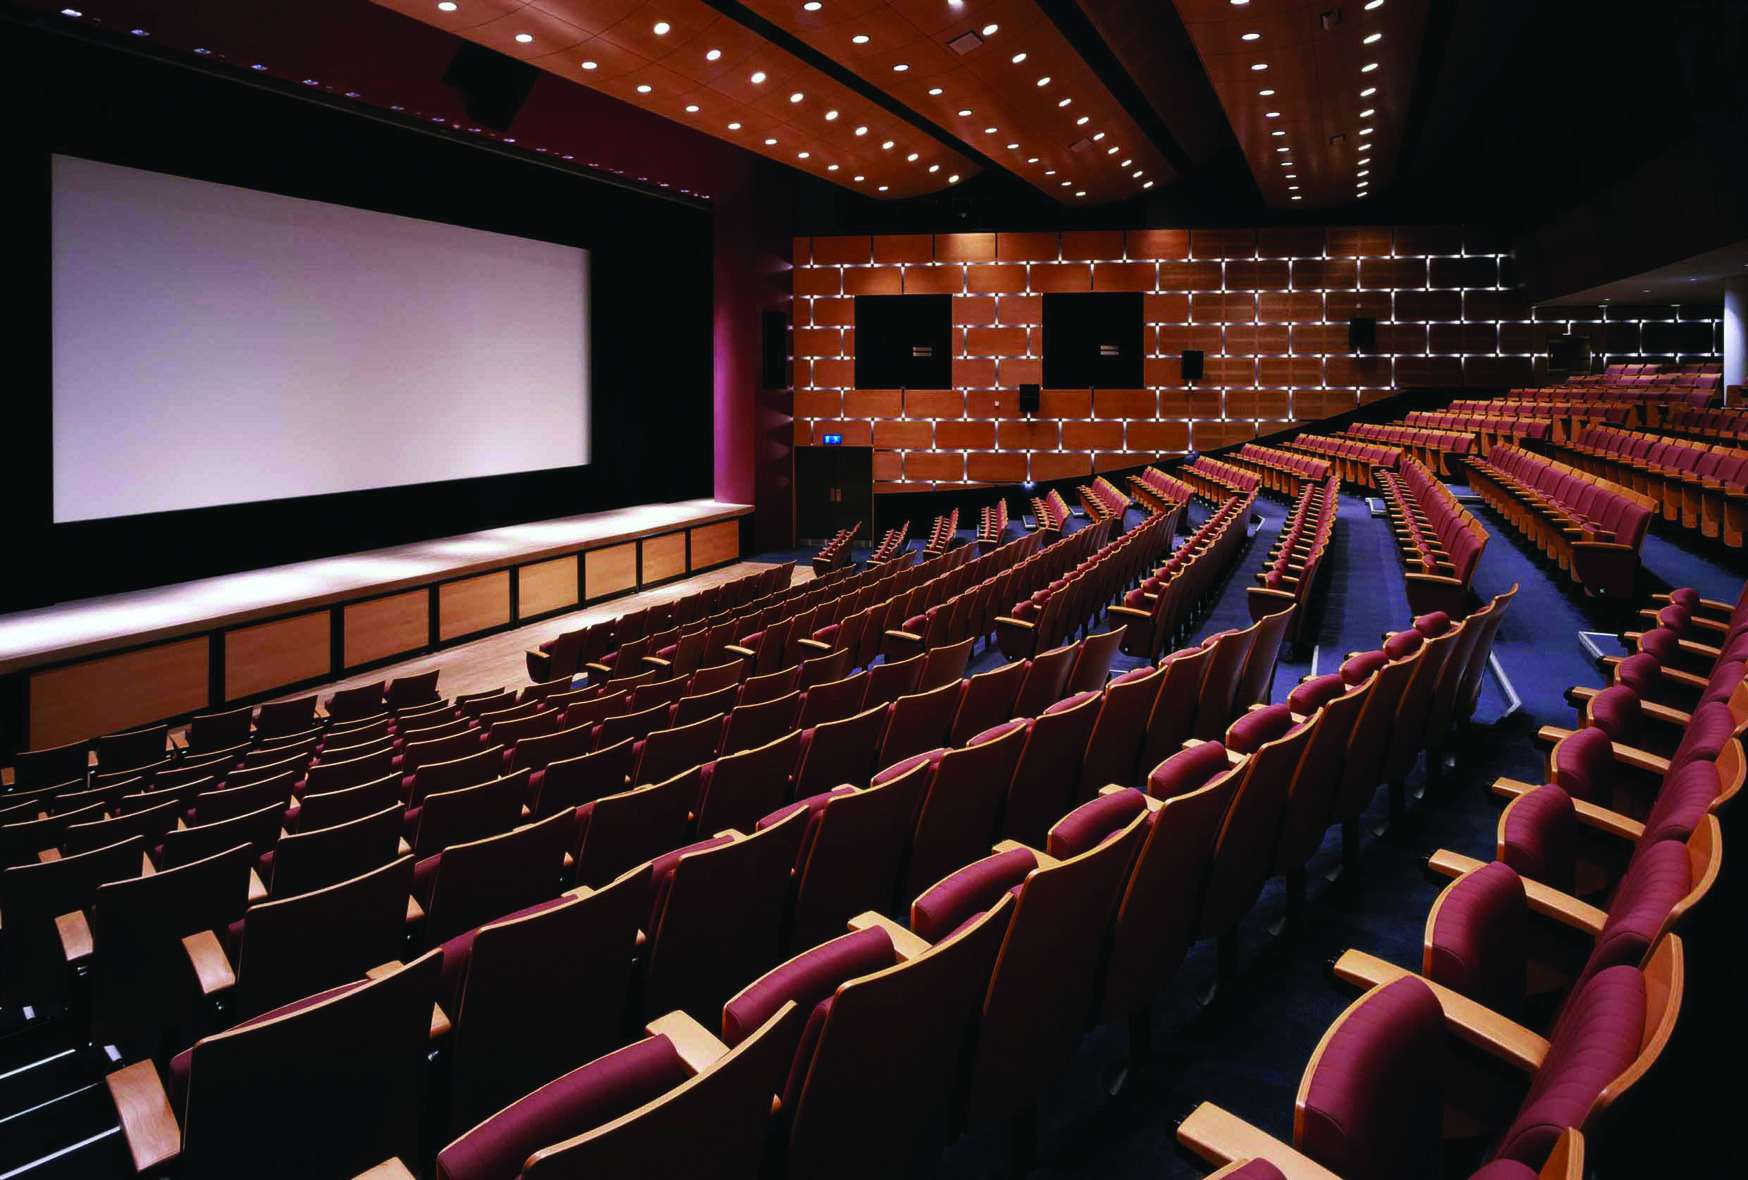 Interior of Macau Tower theatre